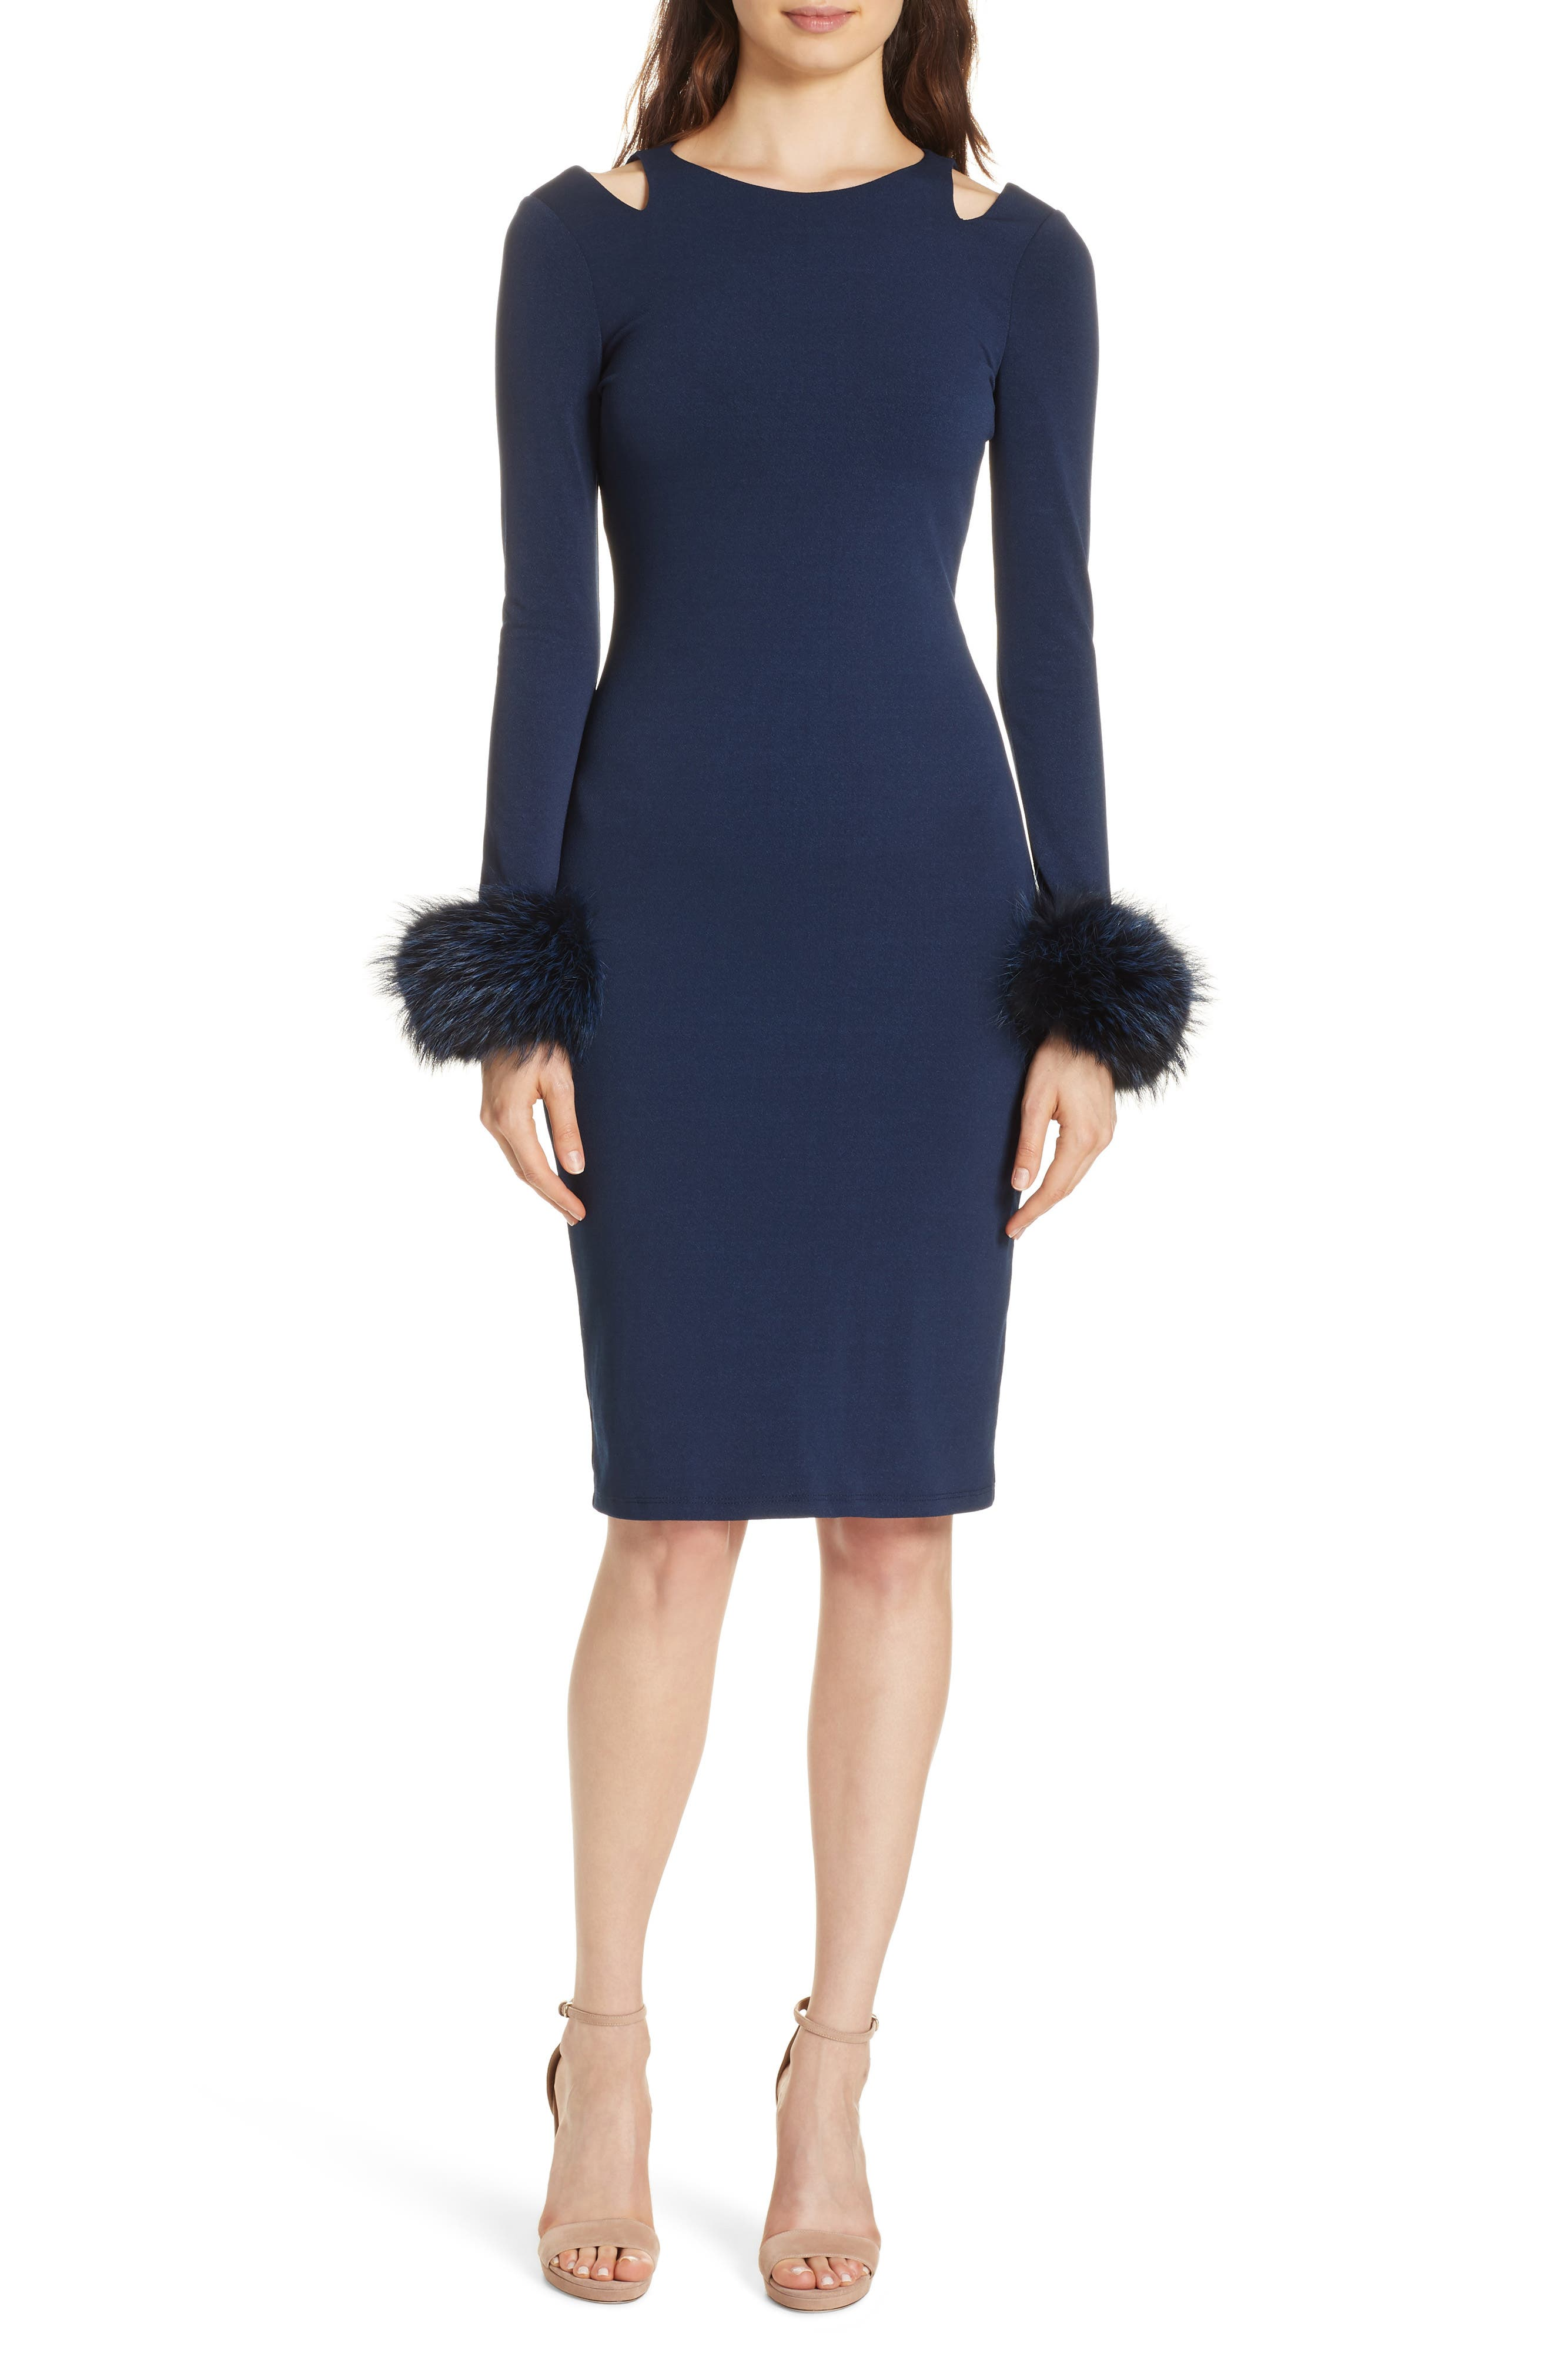 Tabitha Slit-Shoulder Cocktail Dress W/ Fox Fur Cuffs in Blue